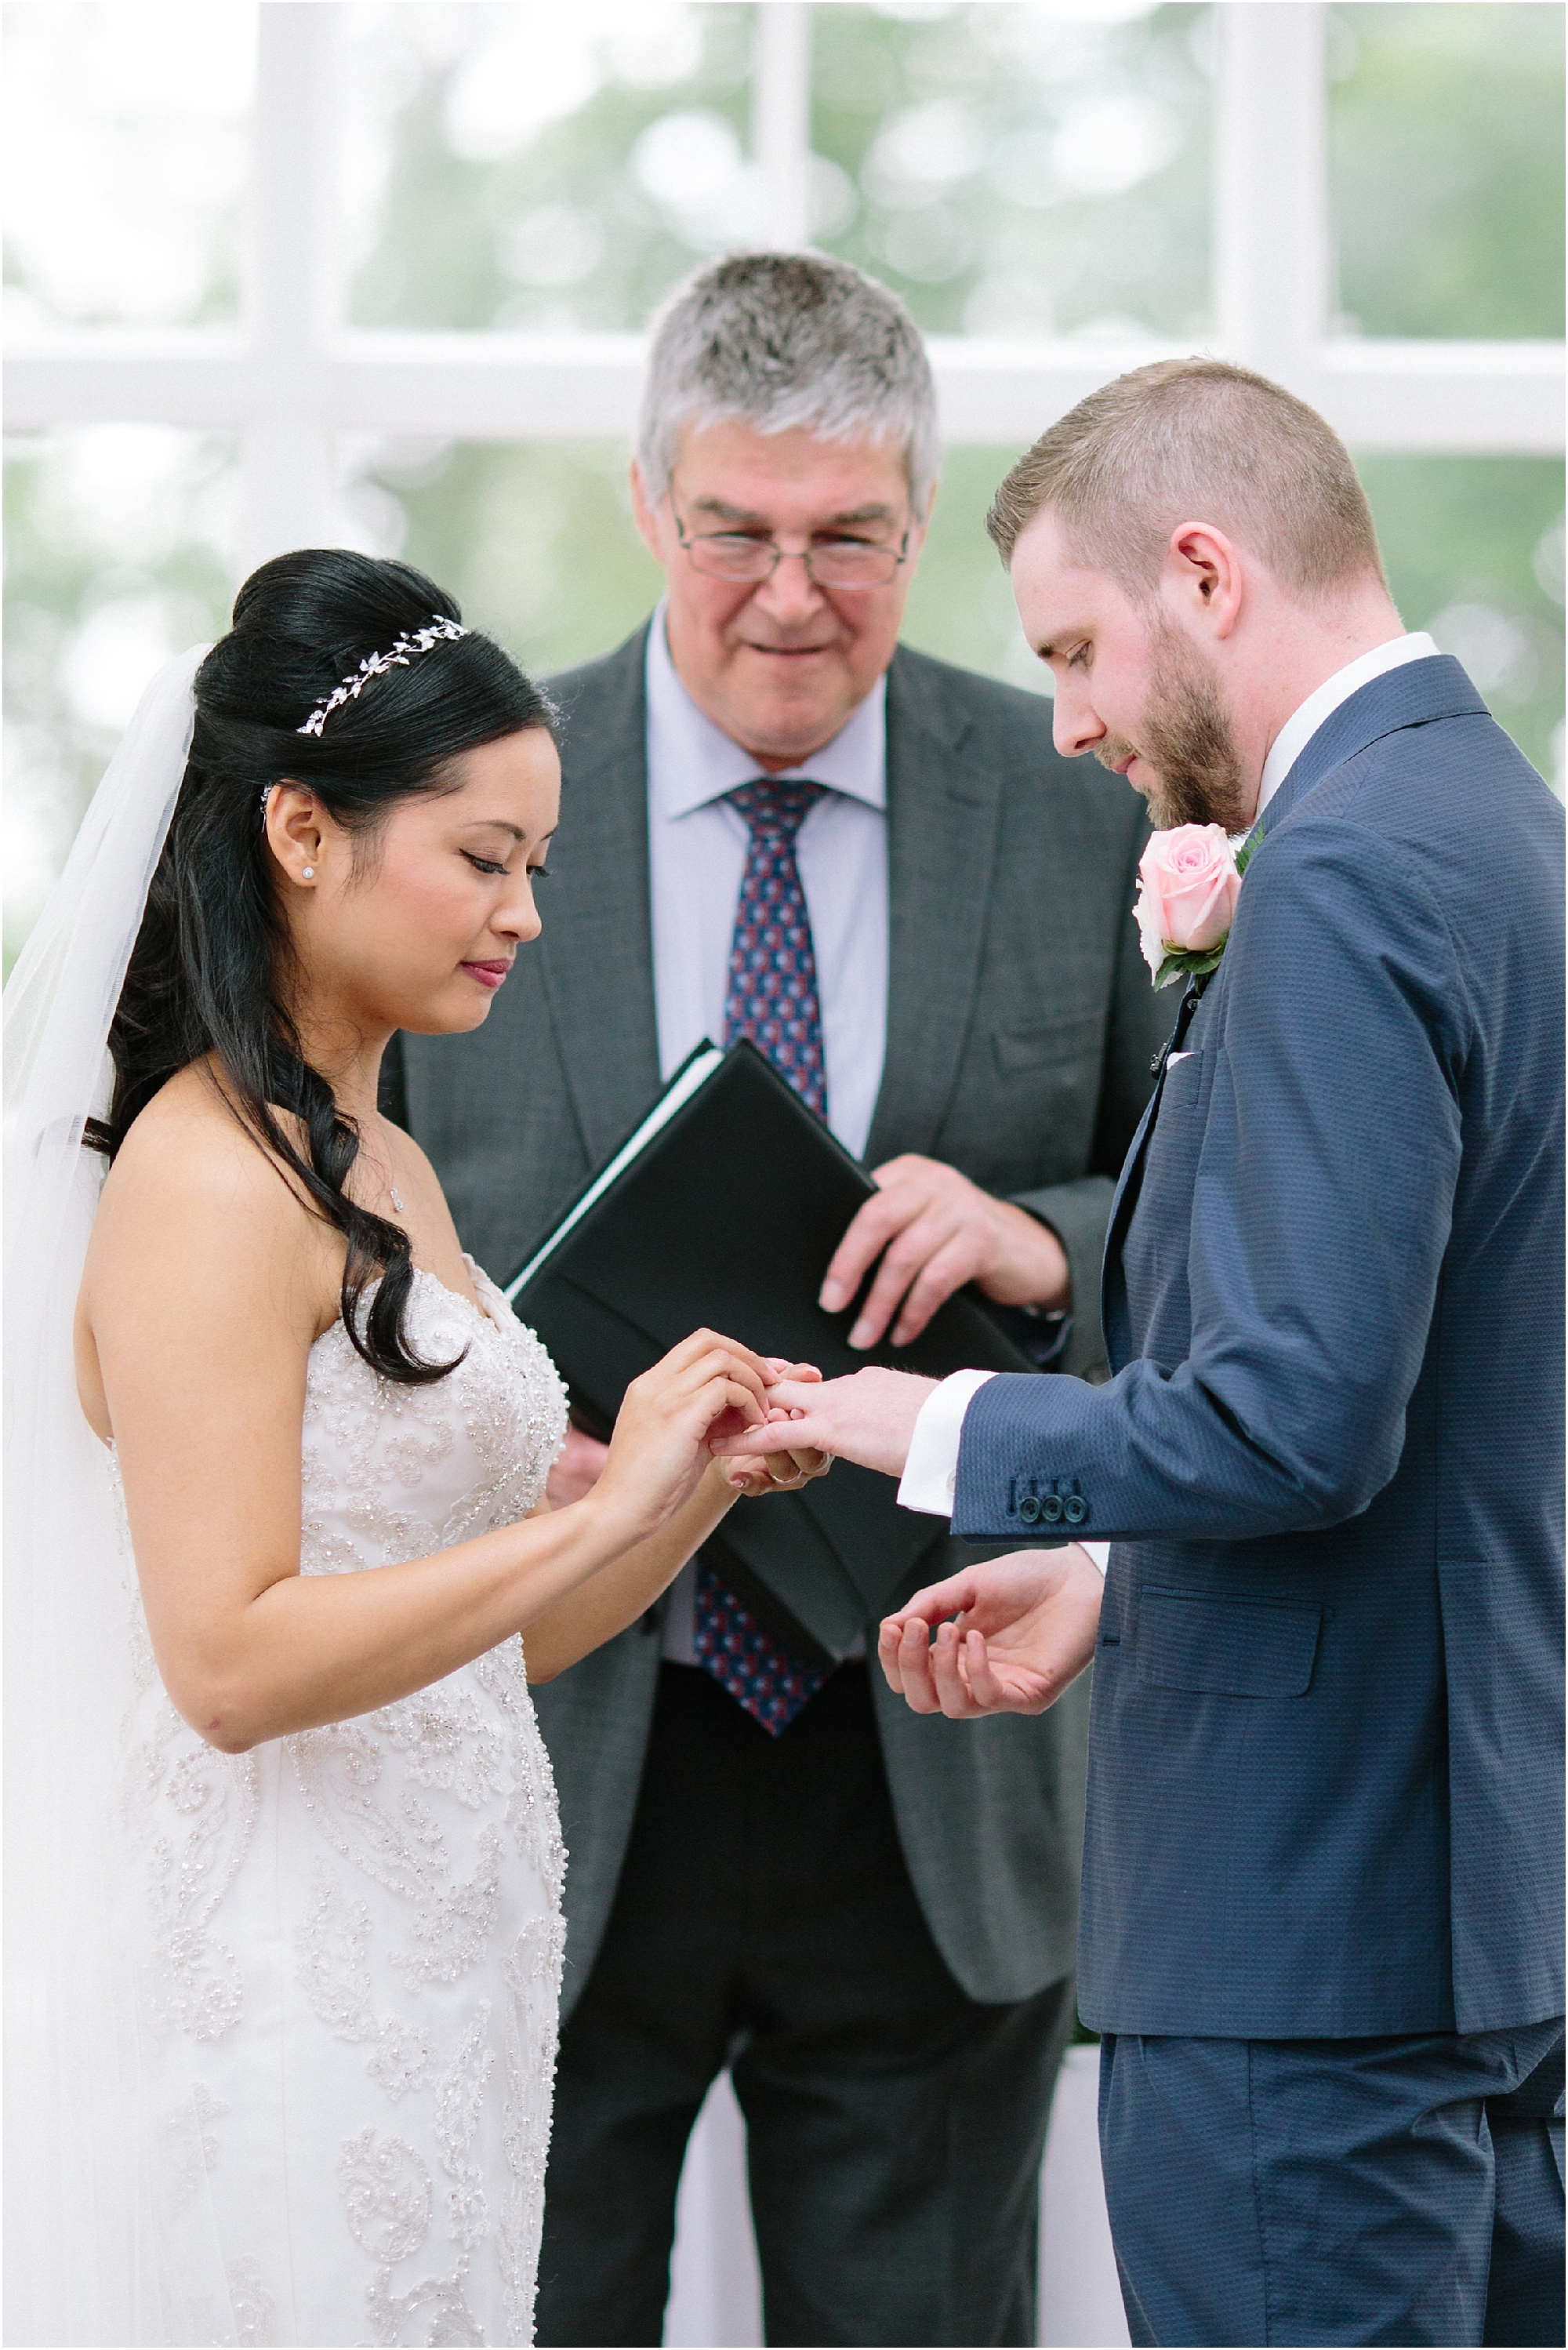 Couple exchanging rings during wedding ceremony